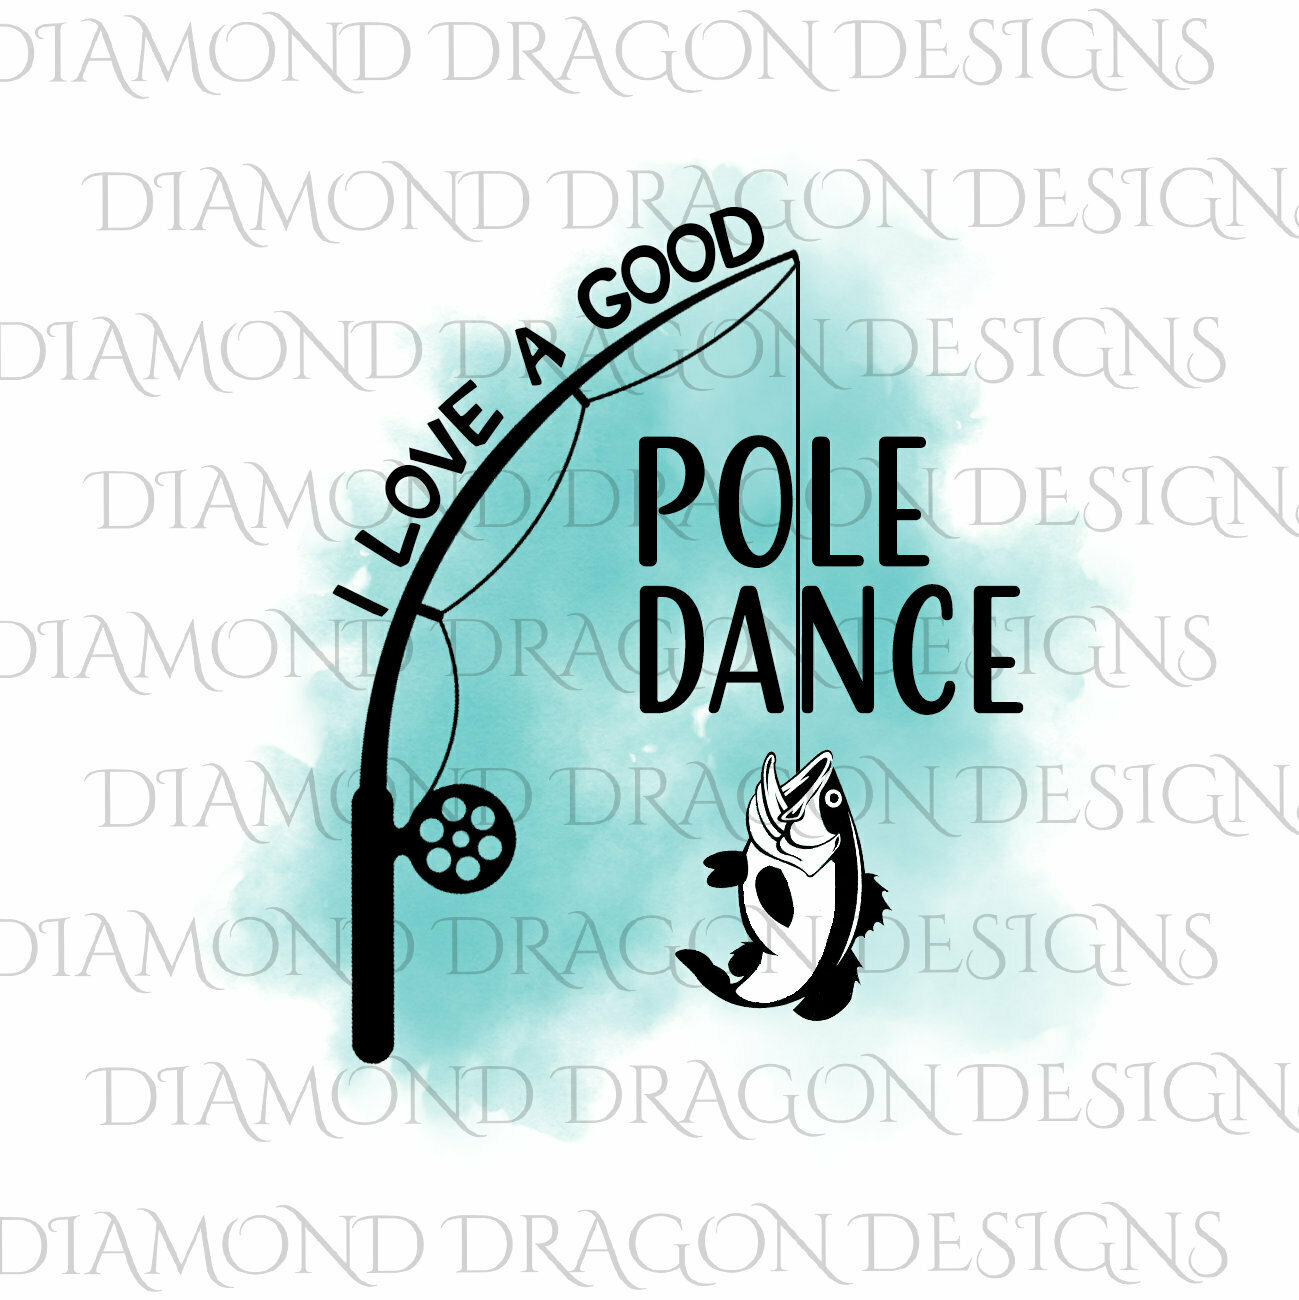 Fishing - I Love a Good Pole Dance, Watercolor, Pole Dance, Fishing Rod, Father's Day, Waterslide